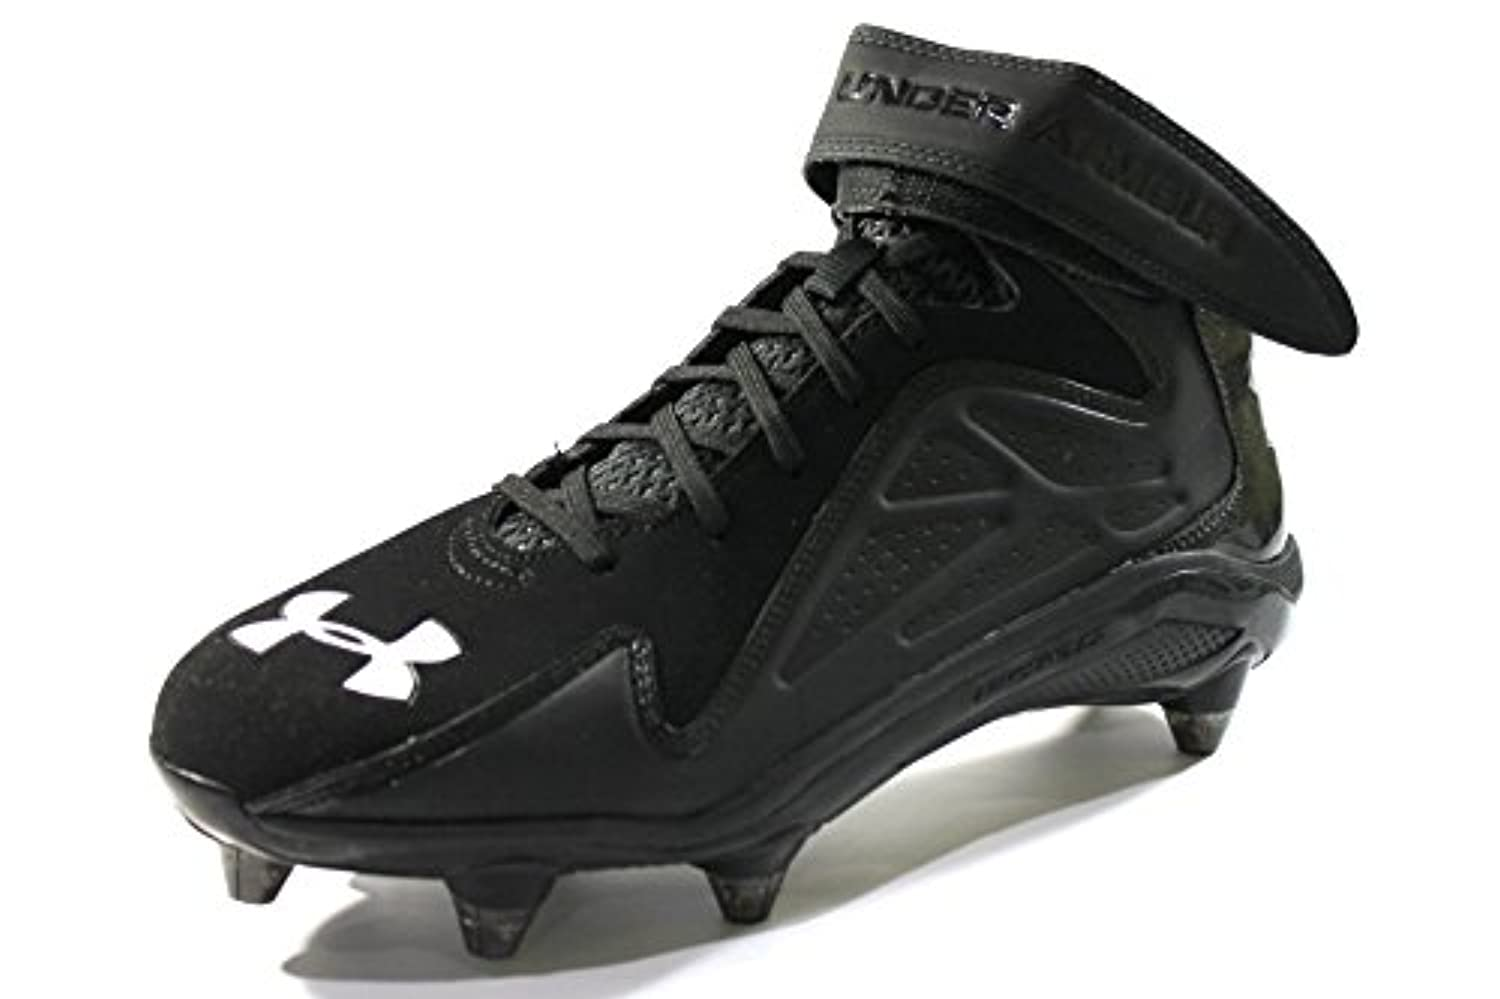 200108033 ... Under Armour Men s Micro G Renegade Mid D Black Football Cleats size  10.5 ...